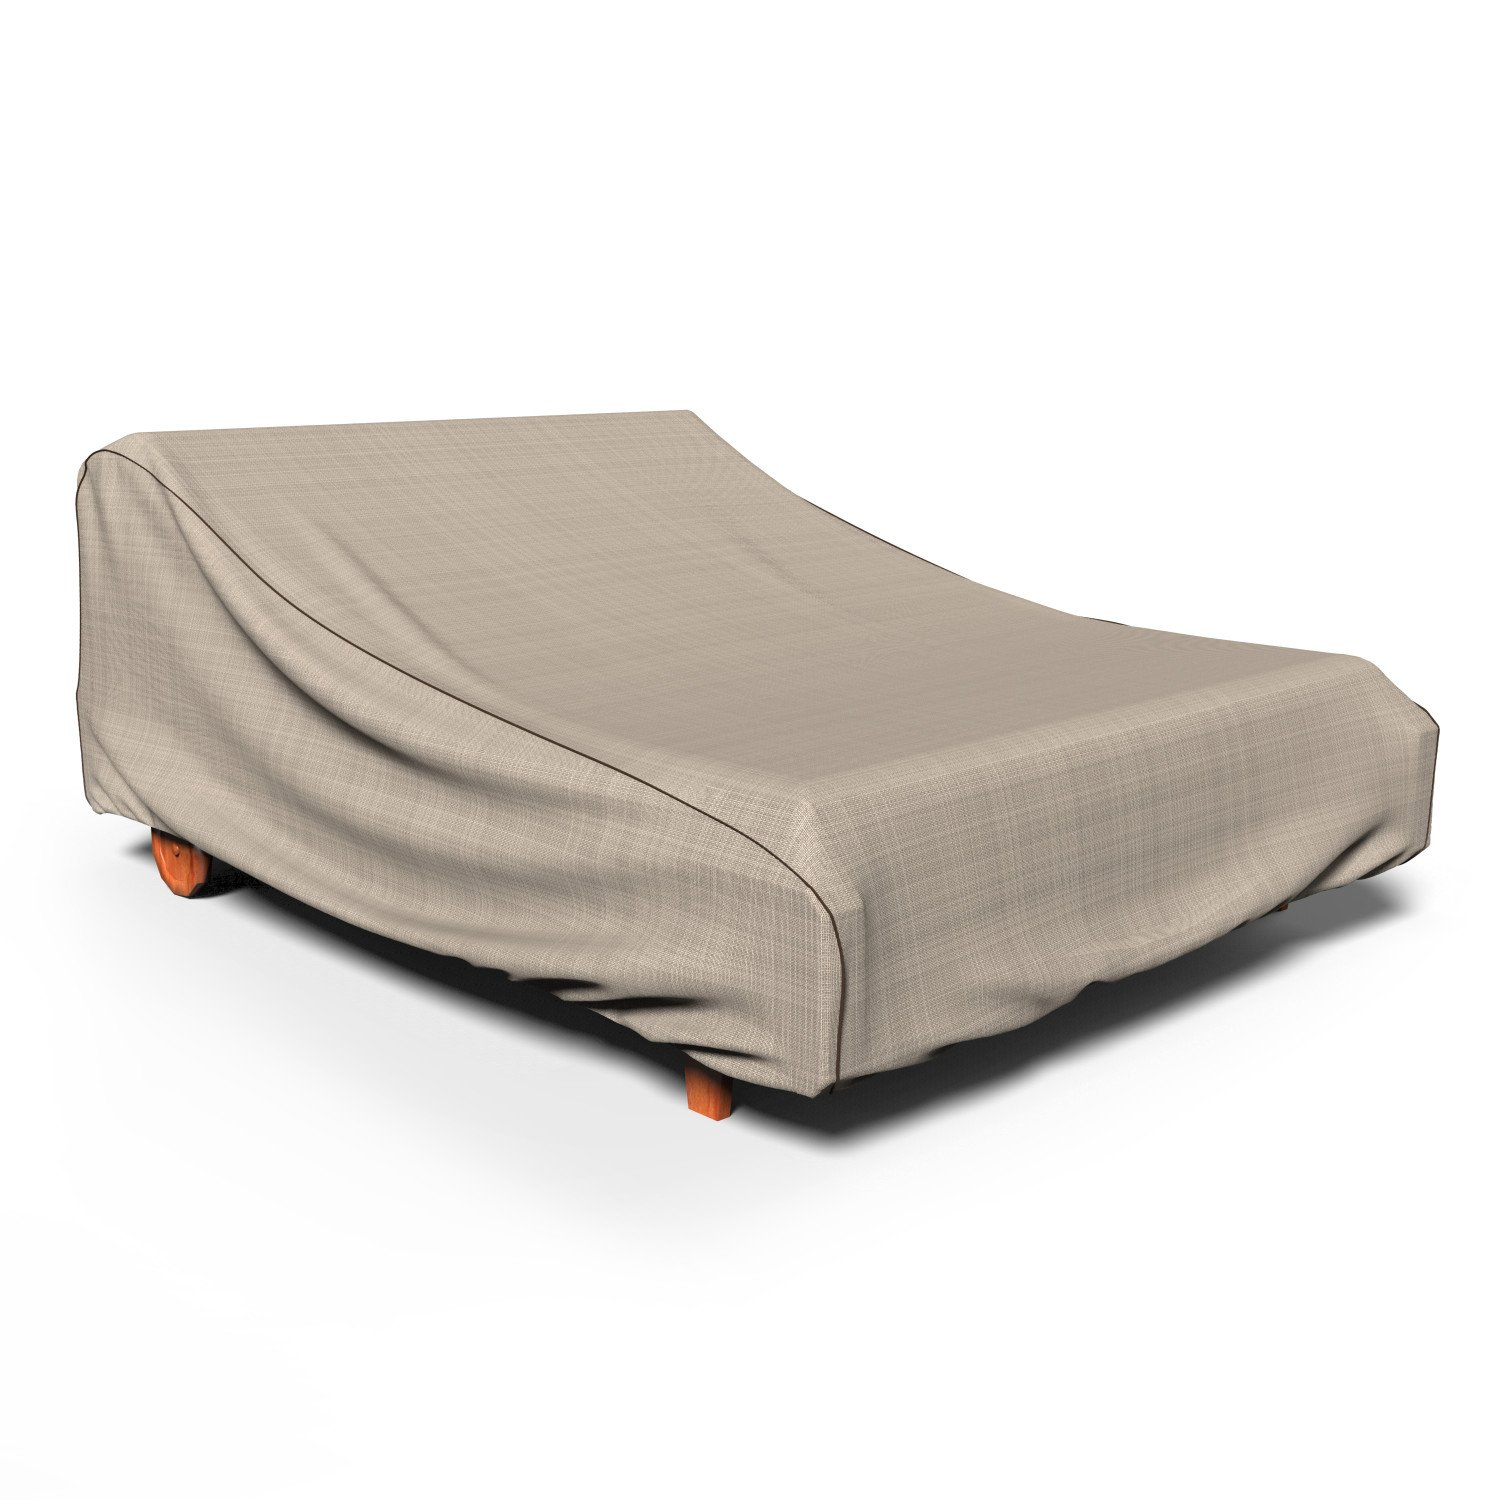 Budge P2A01PM1 English Garden Double Patio Chaise Lounge Cover, 32''H x 64''W x 80''D, Tan Tweed